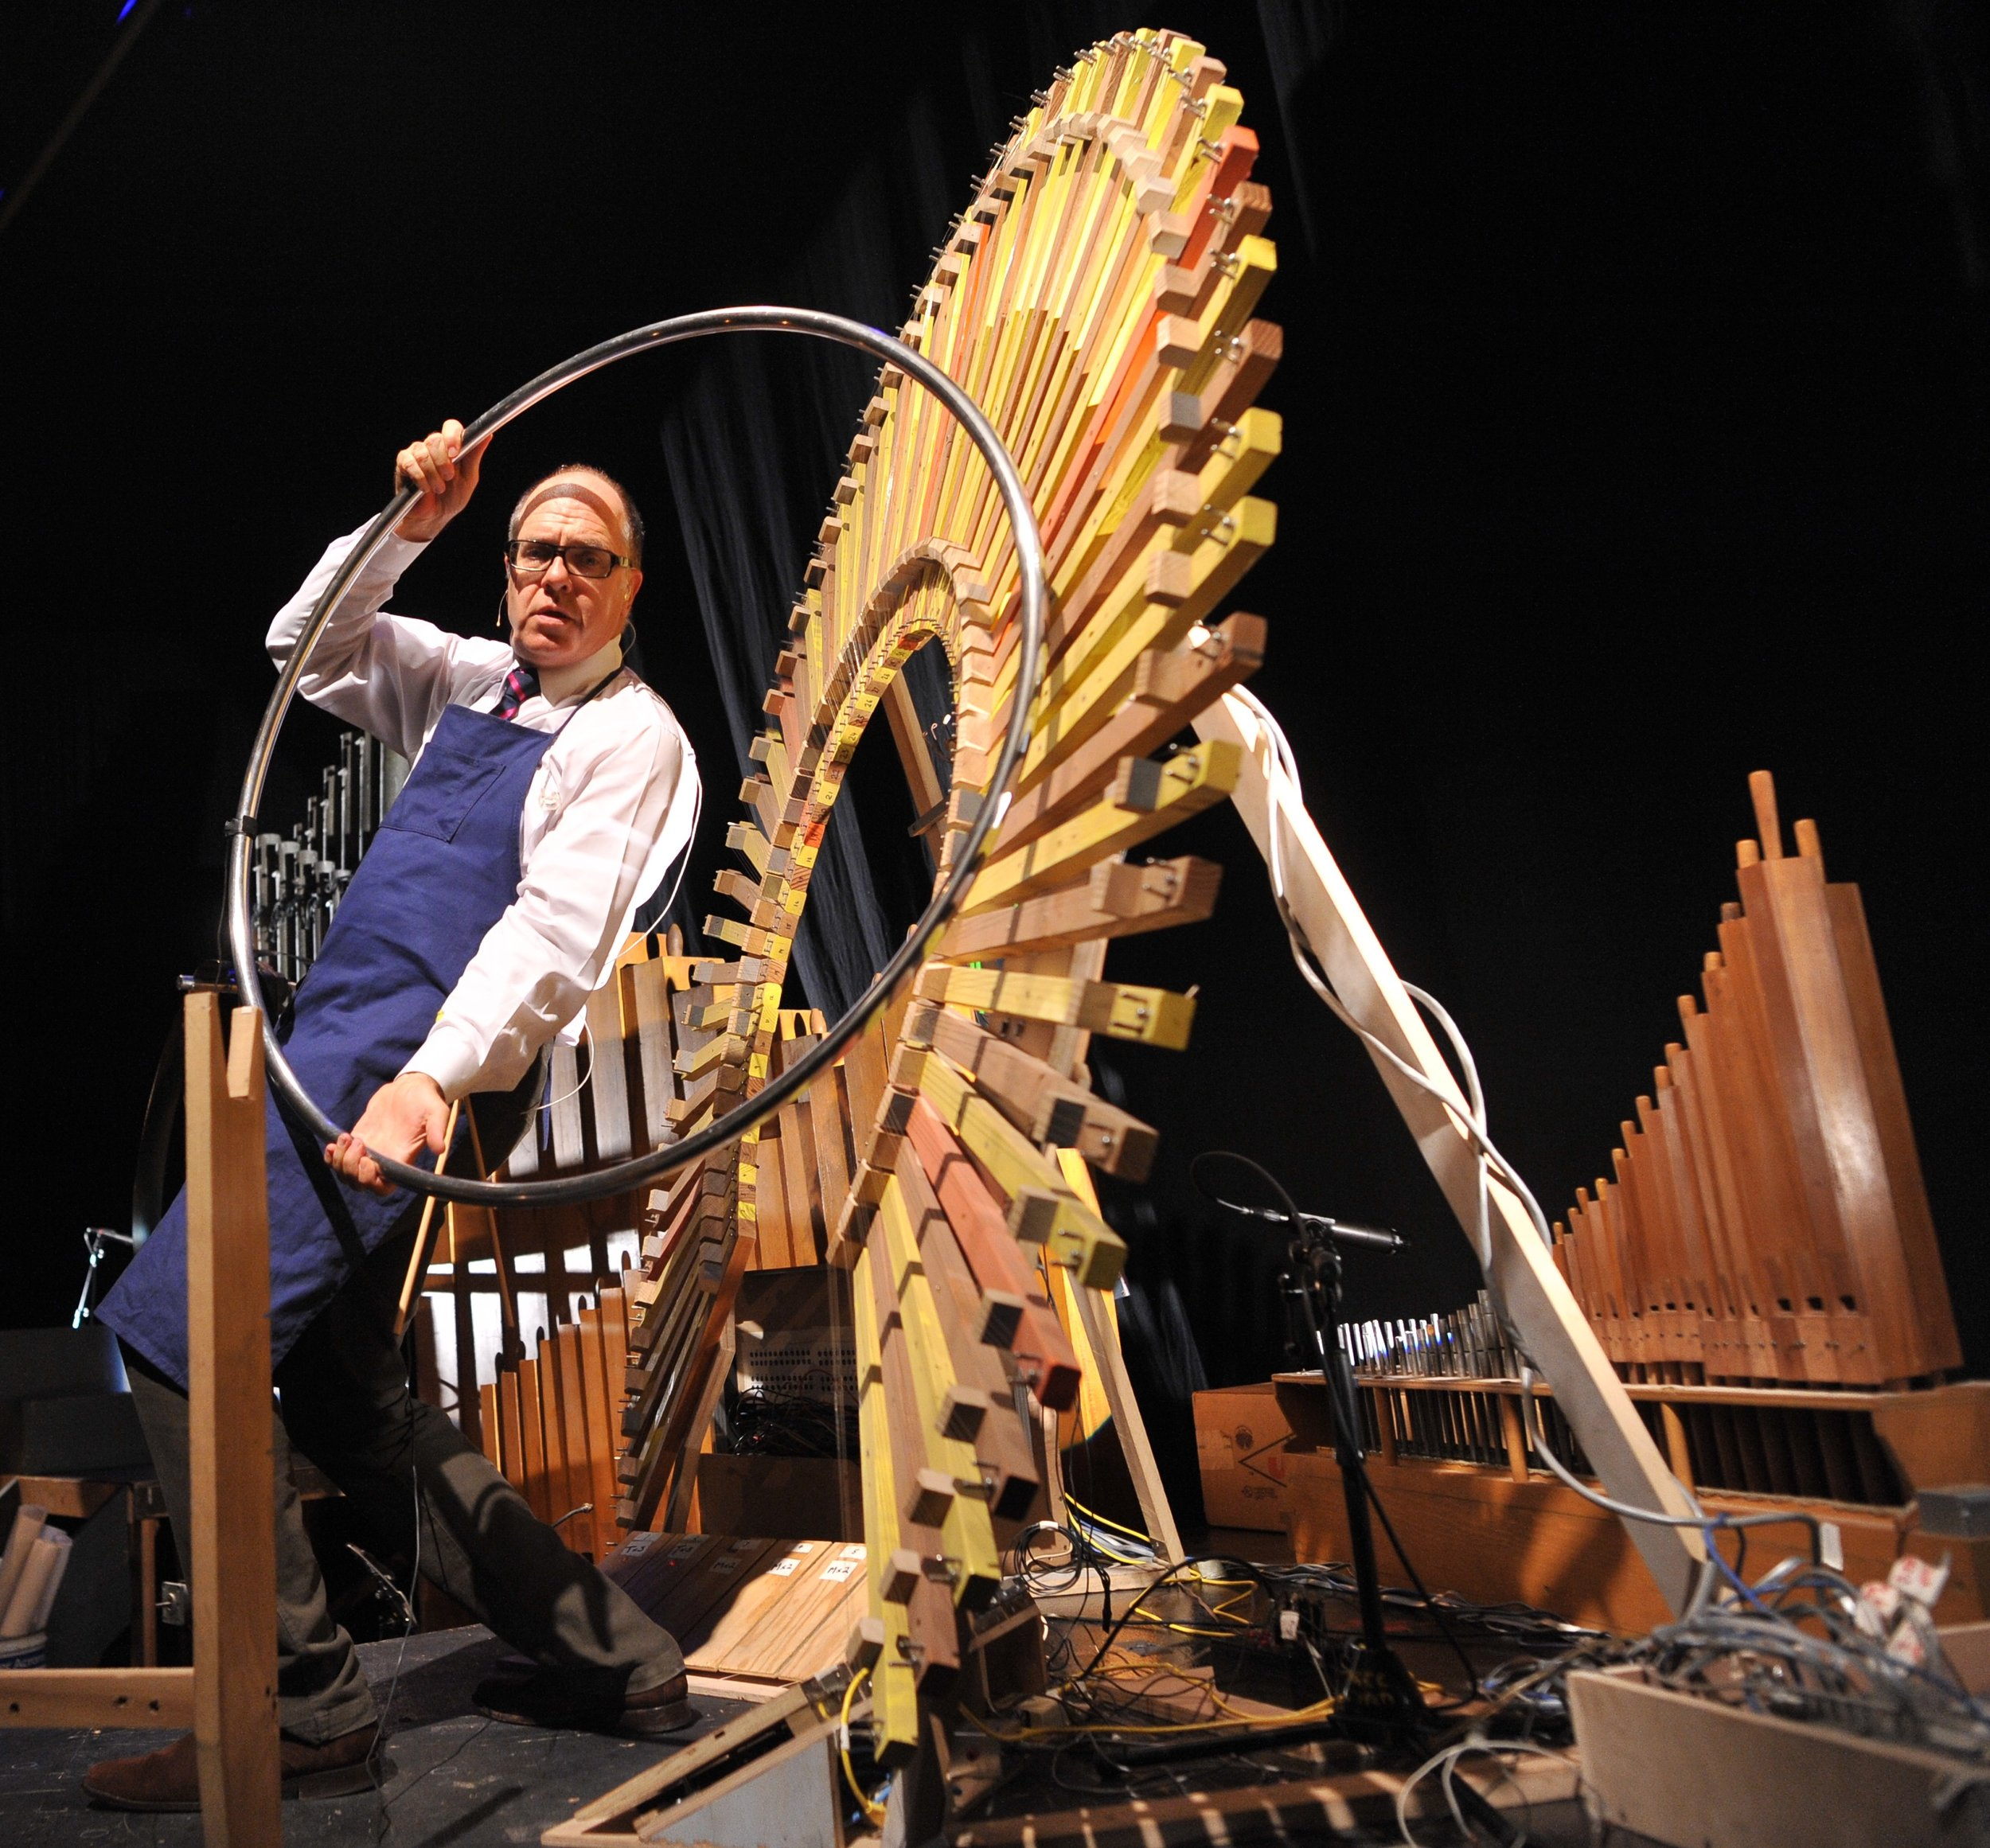 Pictured: Steven Schick at the Peacock in the Paul Dresher Ensemble production of Schick Machine. Photo by Chi Wang.